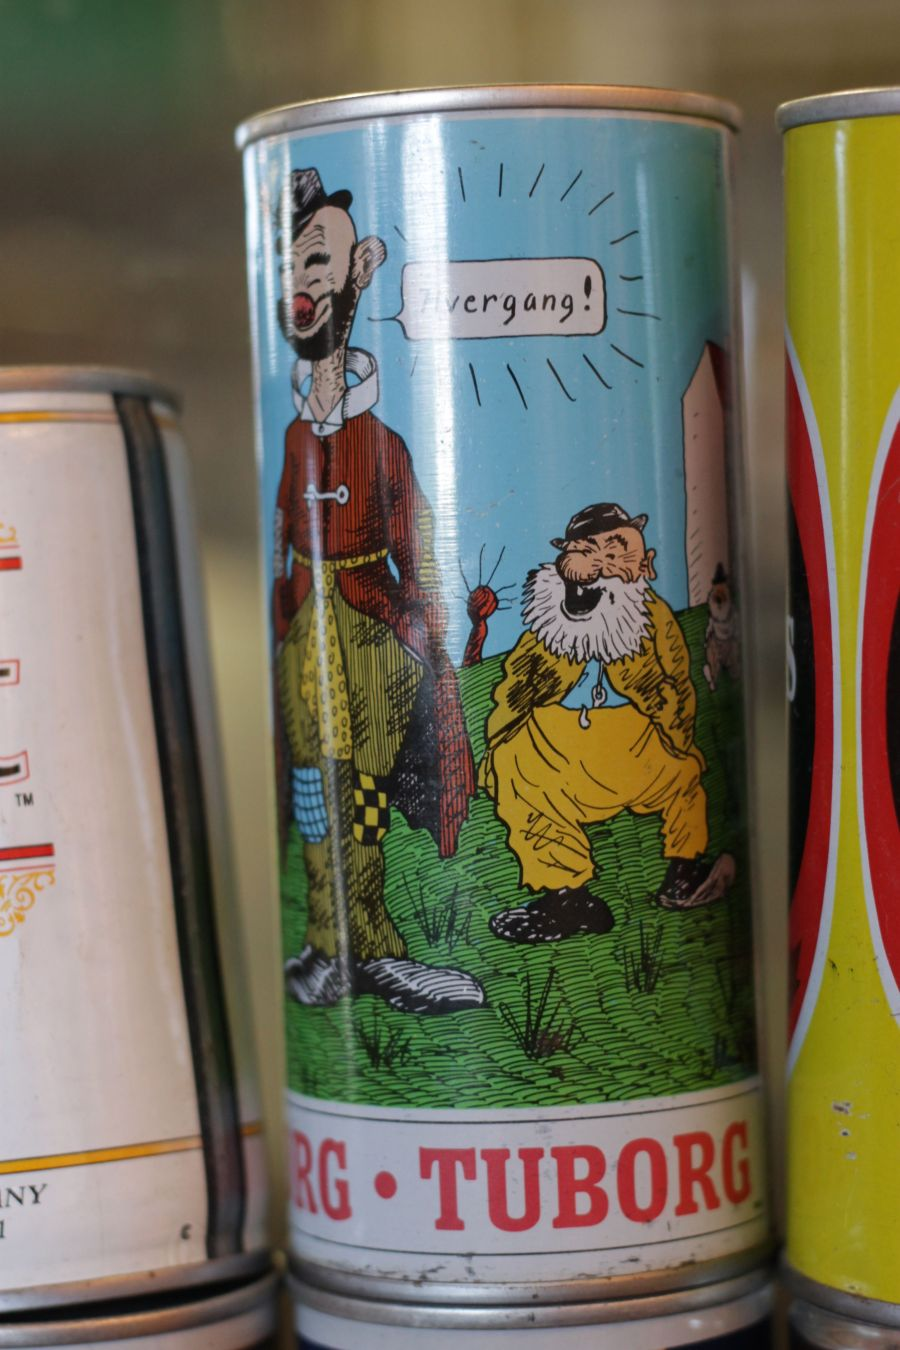 boston harpoon brewery beer can collection 8 tuborg